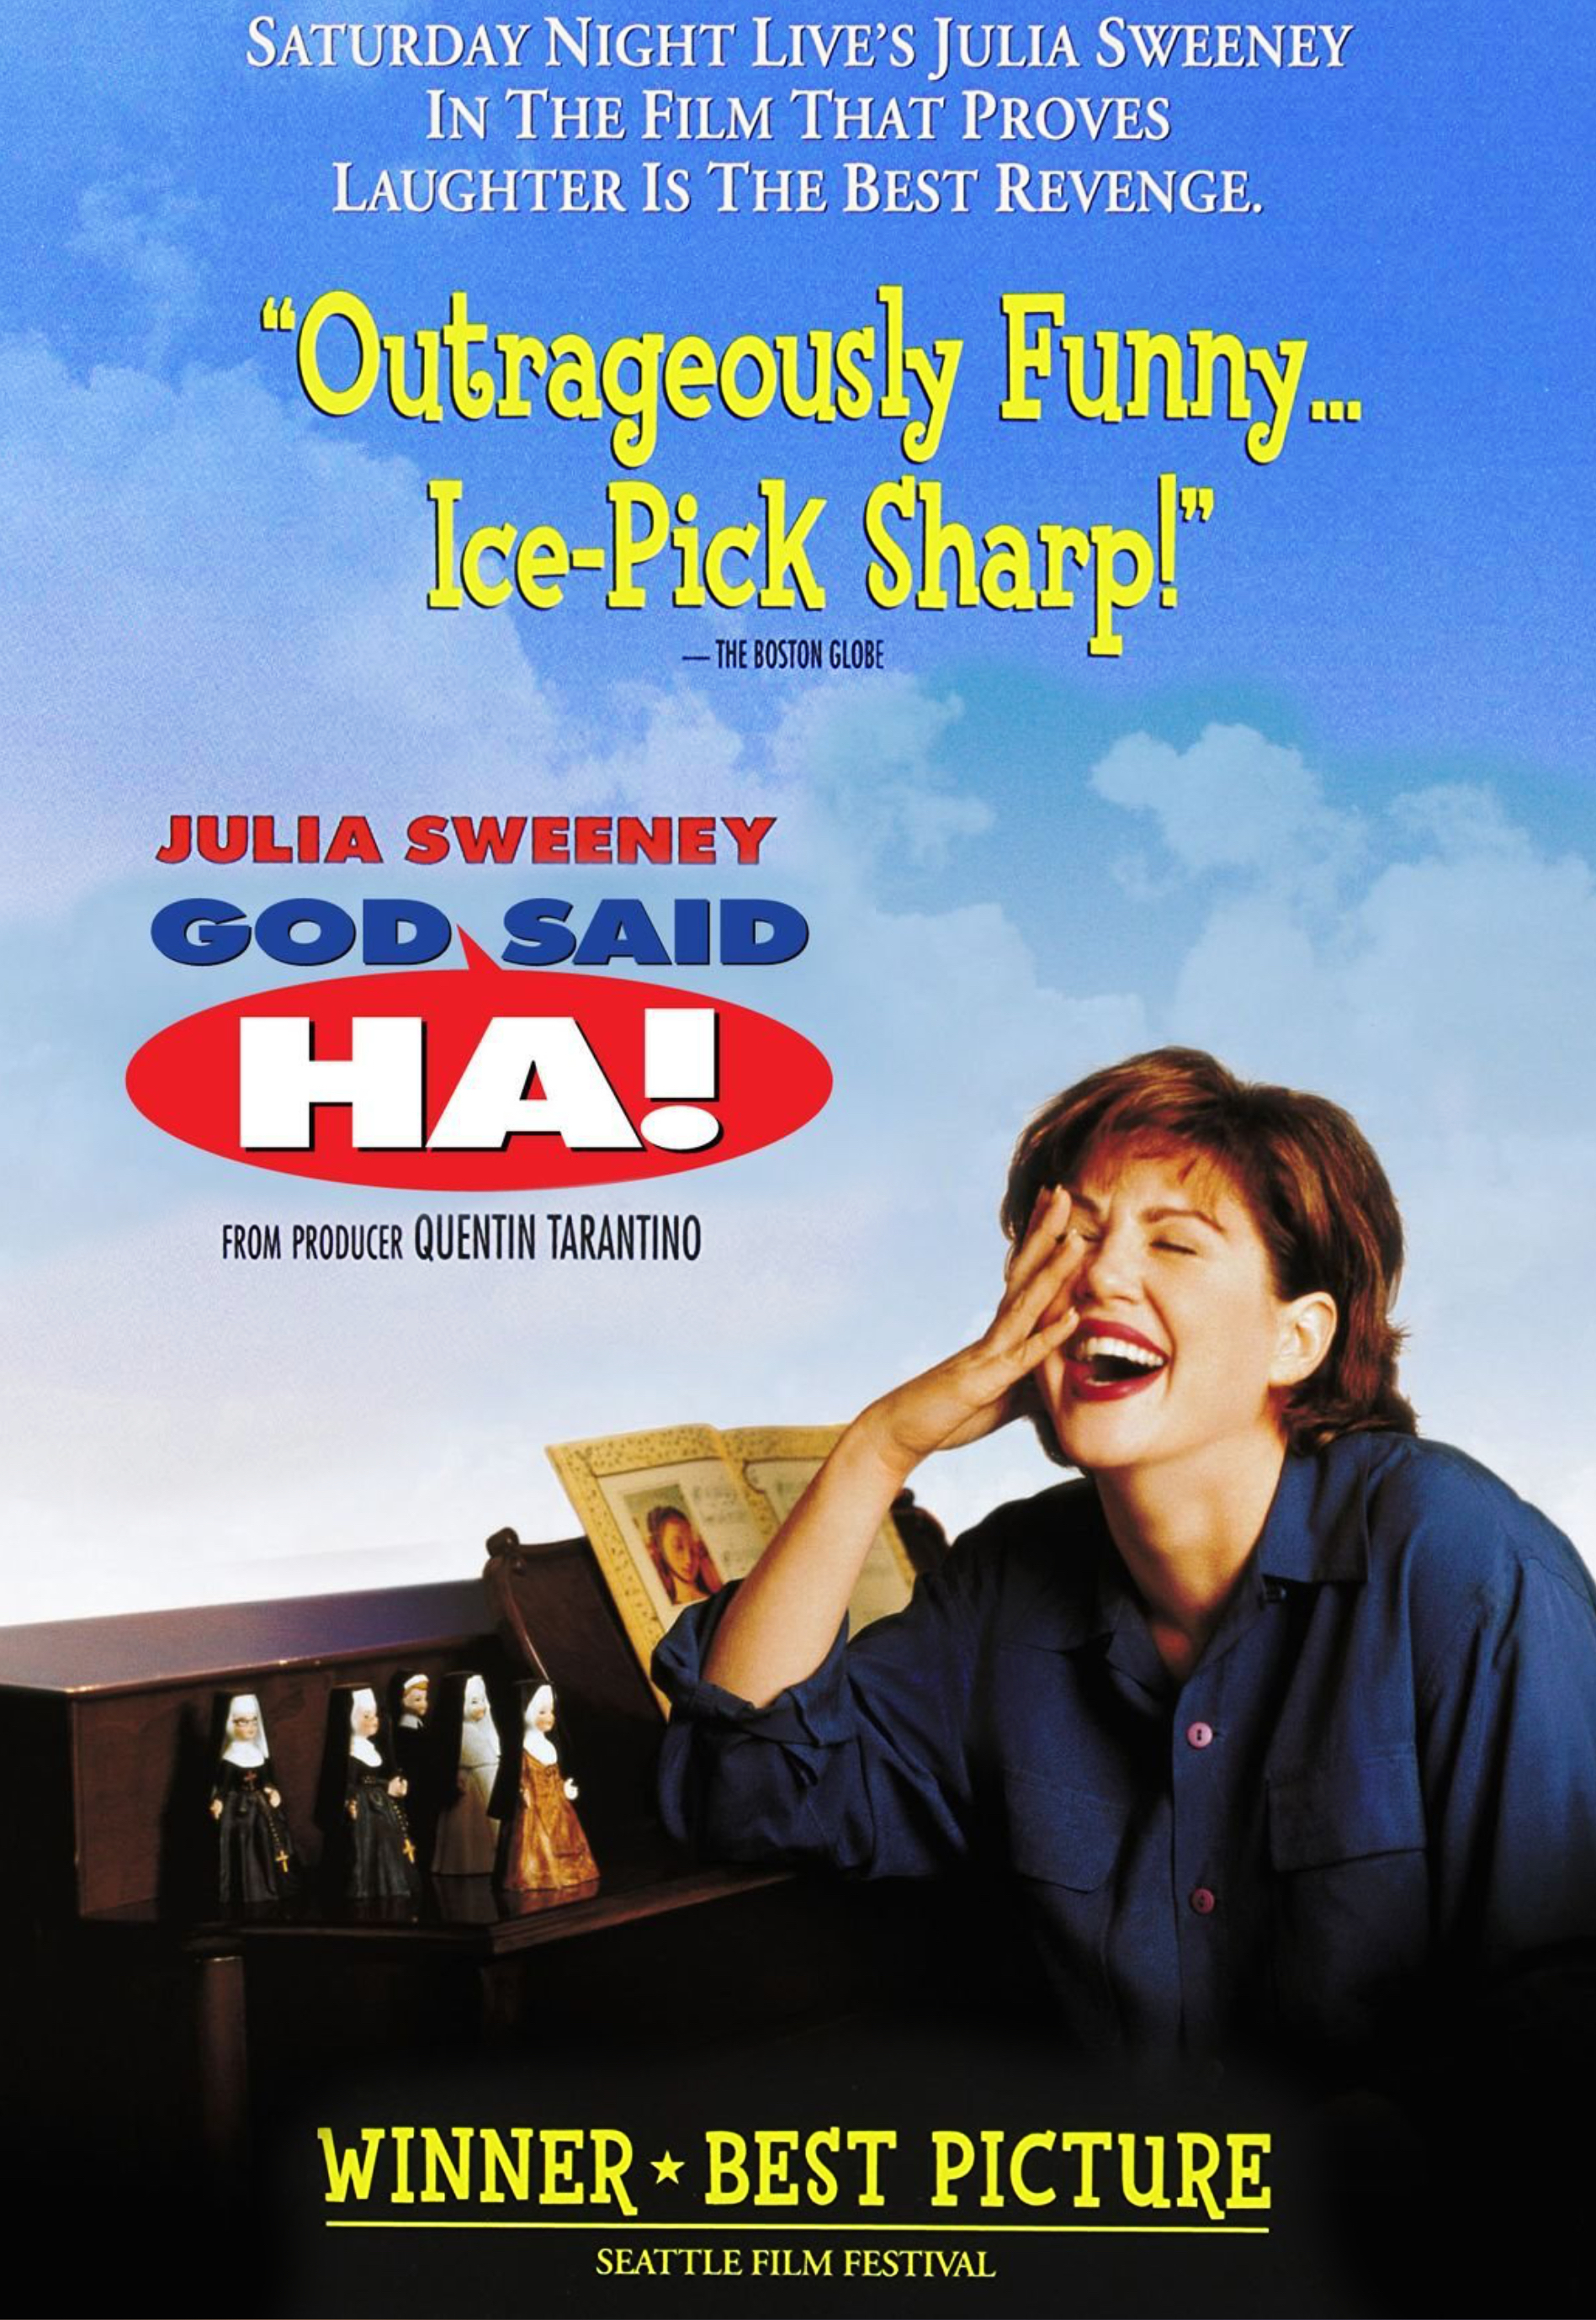 God Said Ha - Score Catalog Artwork V1_Crop.jpg